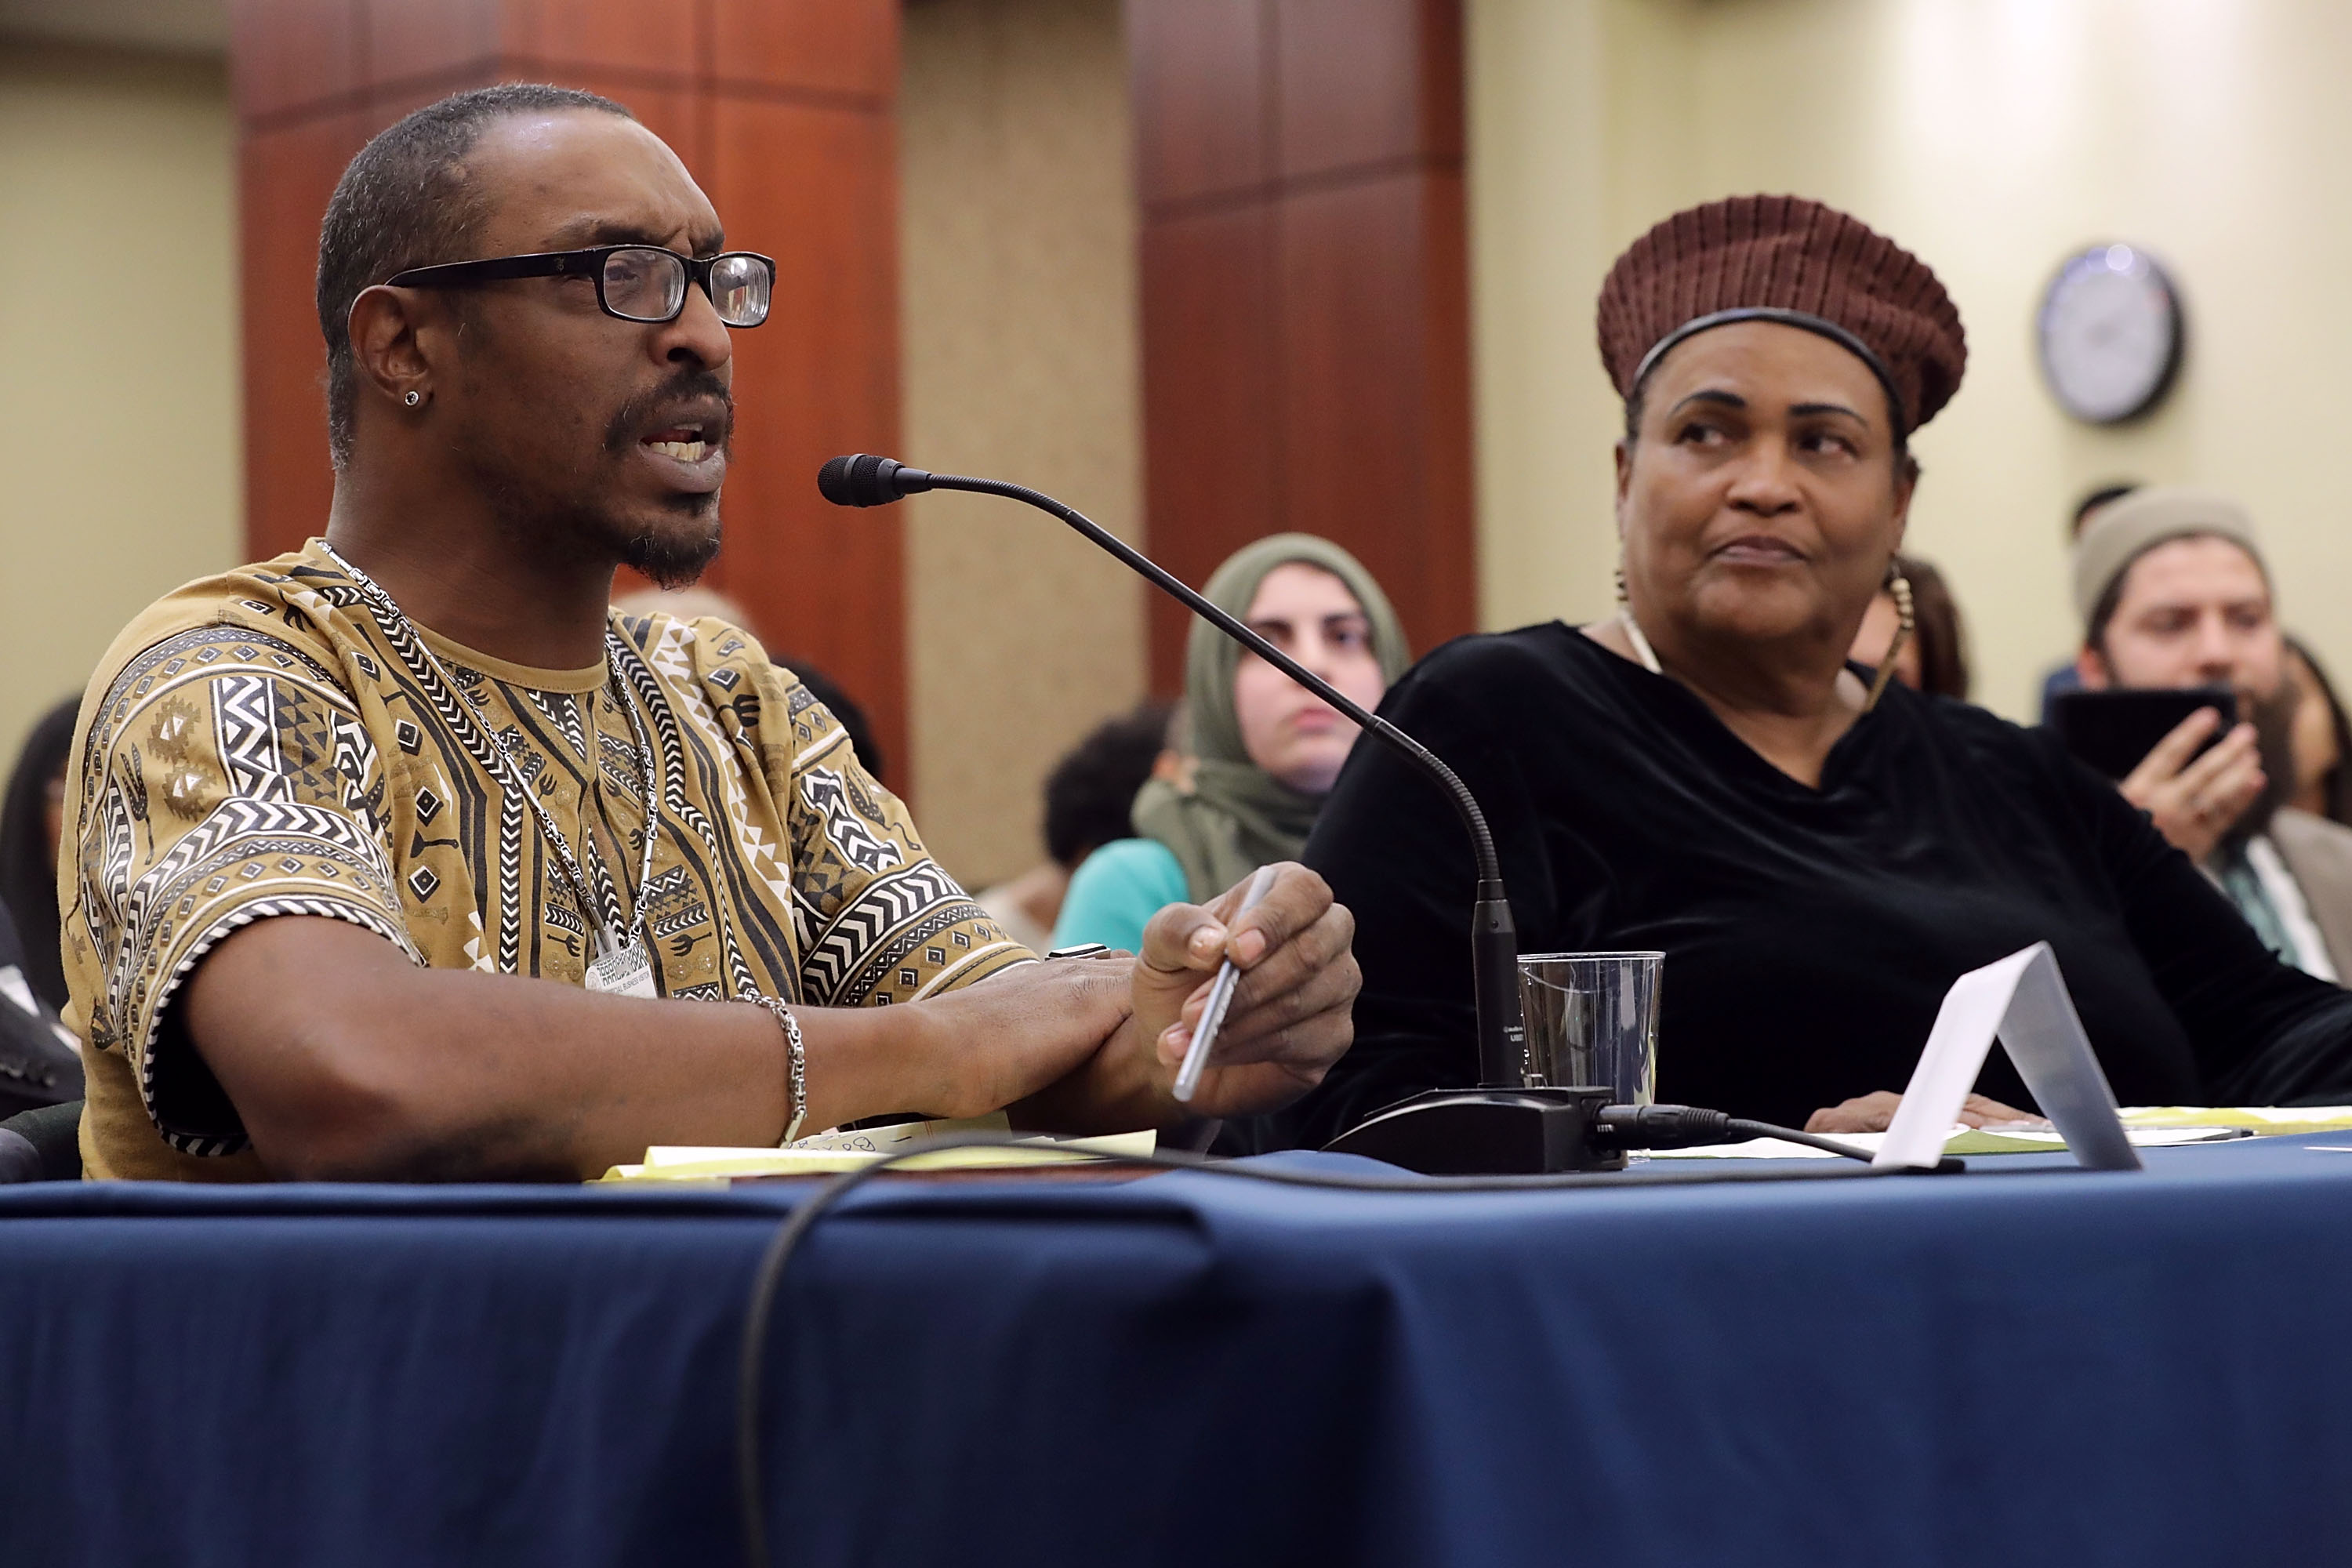 Muhammad Ali Jr., son of boxing legend Muhammad Ali, and his mother Khalilah Camacho-Ali participate in a forum titled 'Ali v. Trump: The Fight for American Values' about immigration enforcement with Democratic members of the House of Representatives in the House Visitors Center at the U.S. Capitol March 9, 2017 in Washington, DC. Ali was held for nearly two hours by Immigration and Customs Enforcement officials and questioned about his Muslim faith after returning to the United States from a trip to Jamaica.